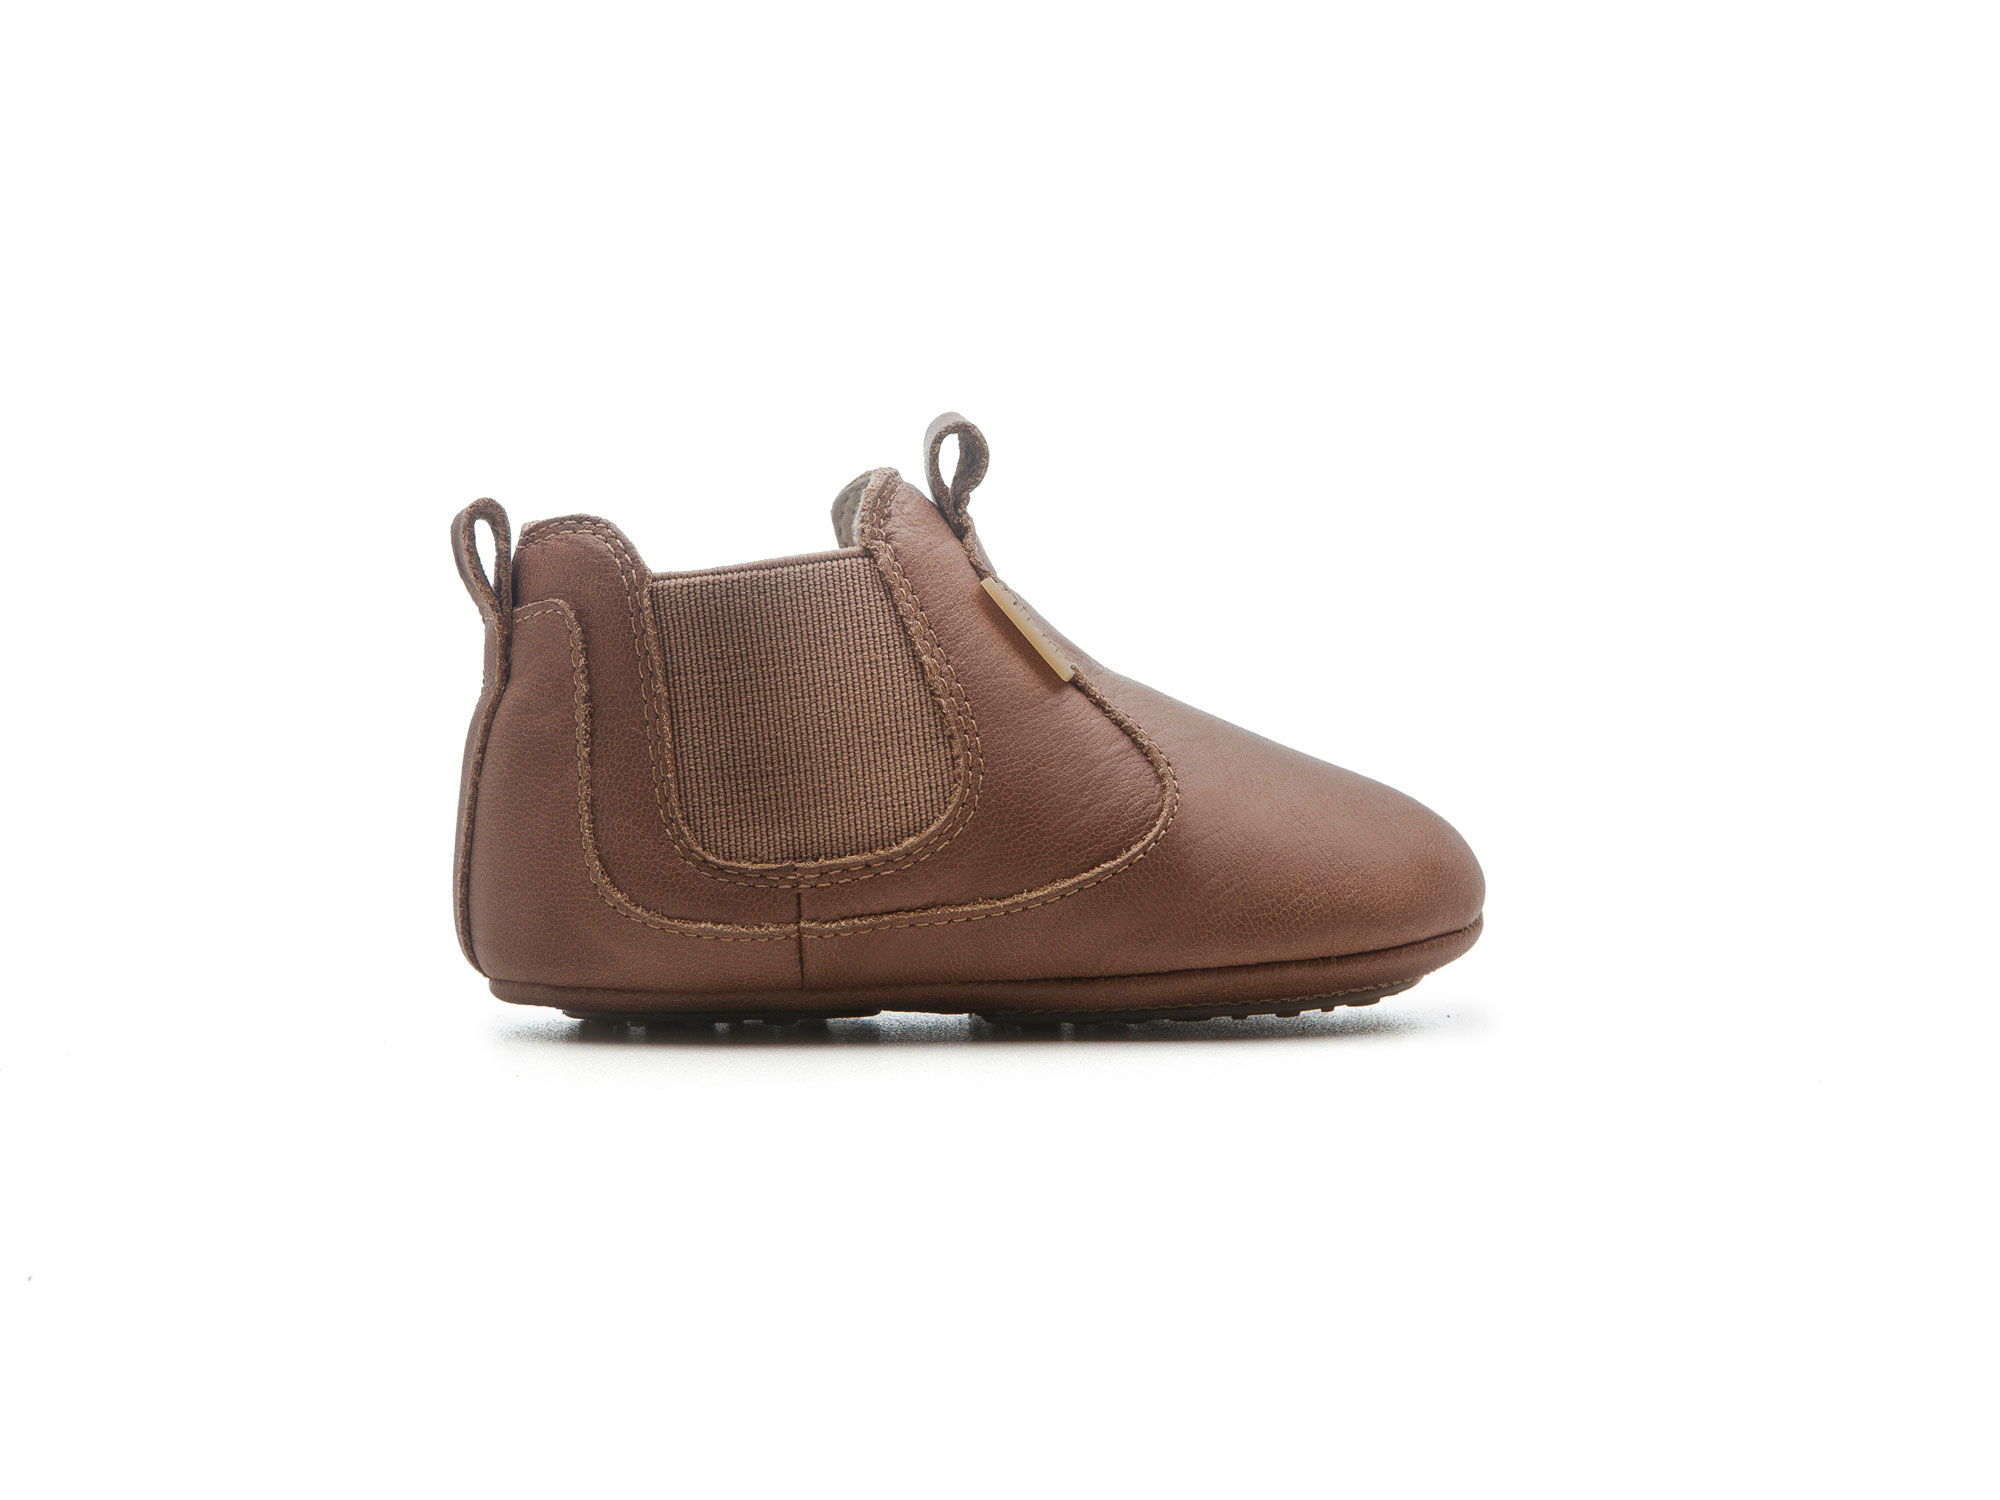 Boot Kicky Whisky  Baby for ages 0 to 2 years - 2